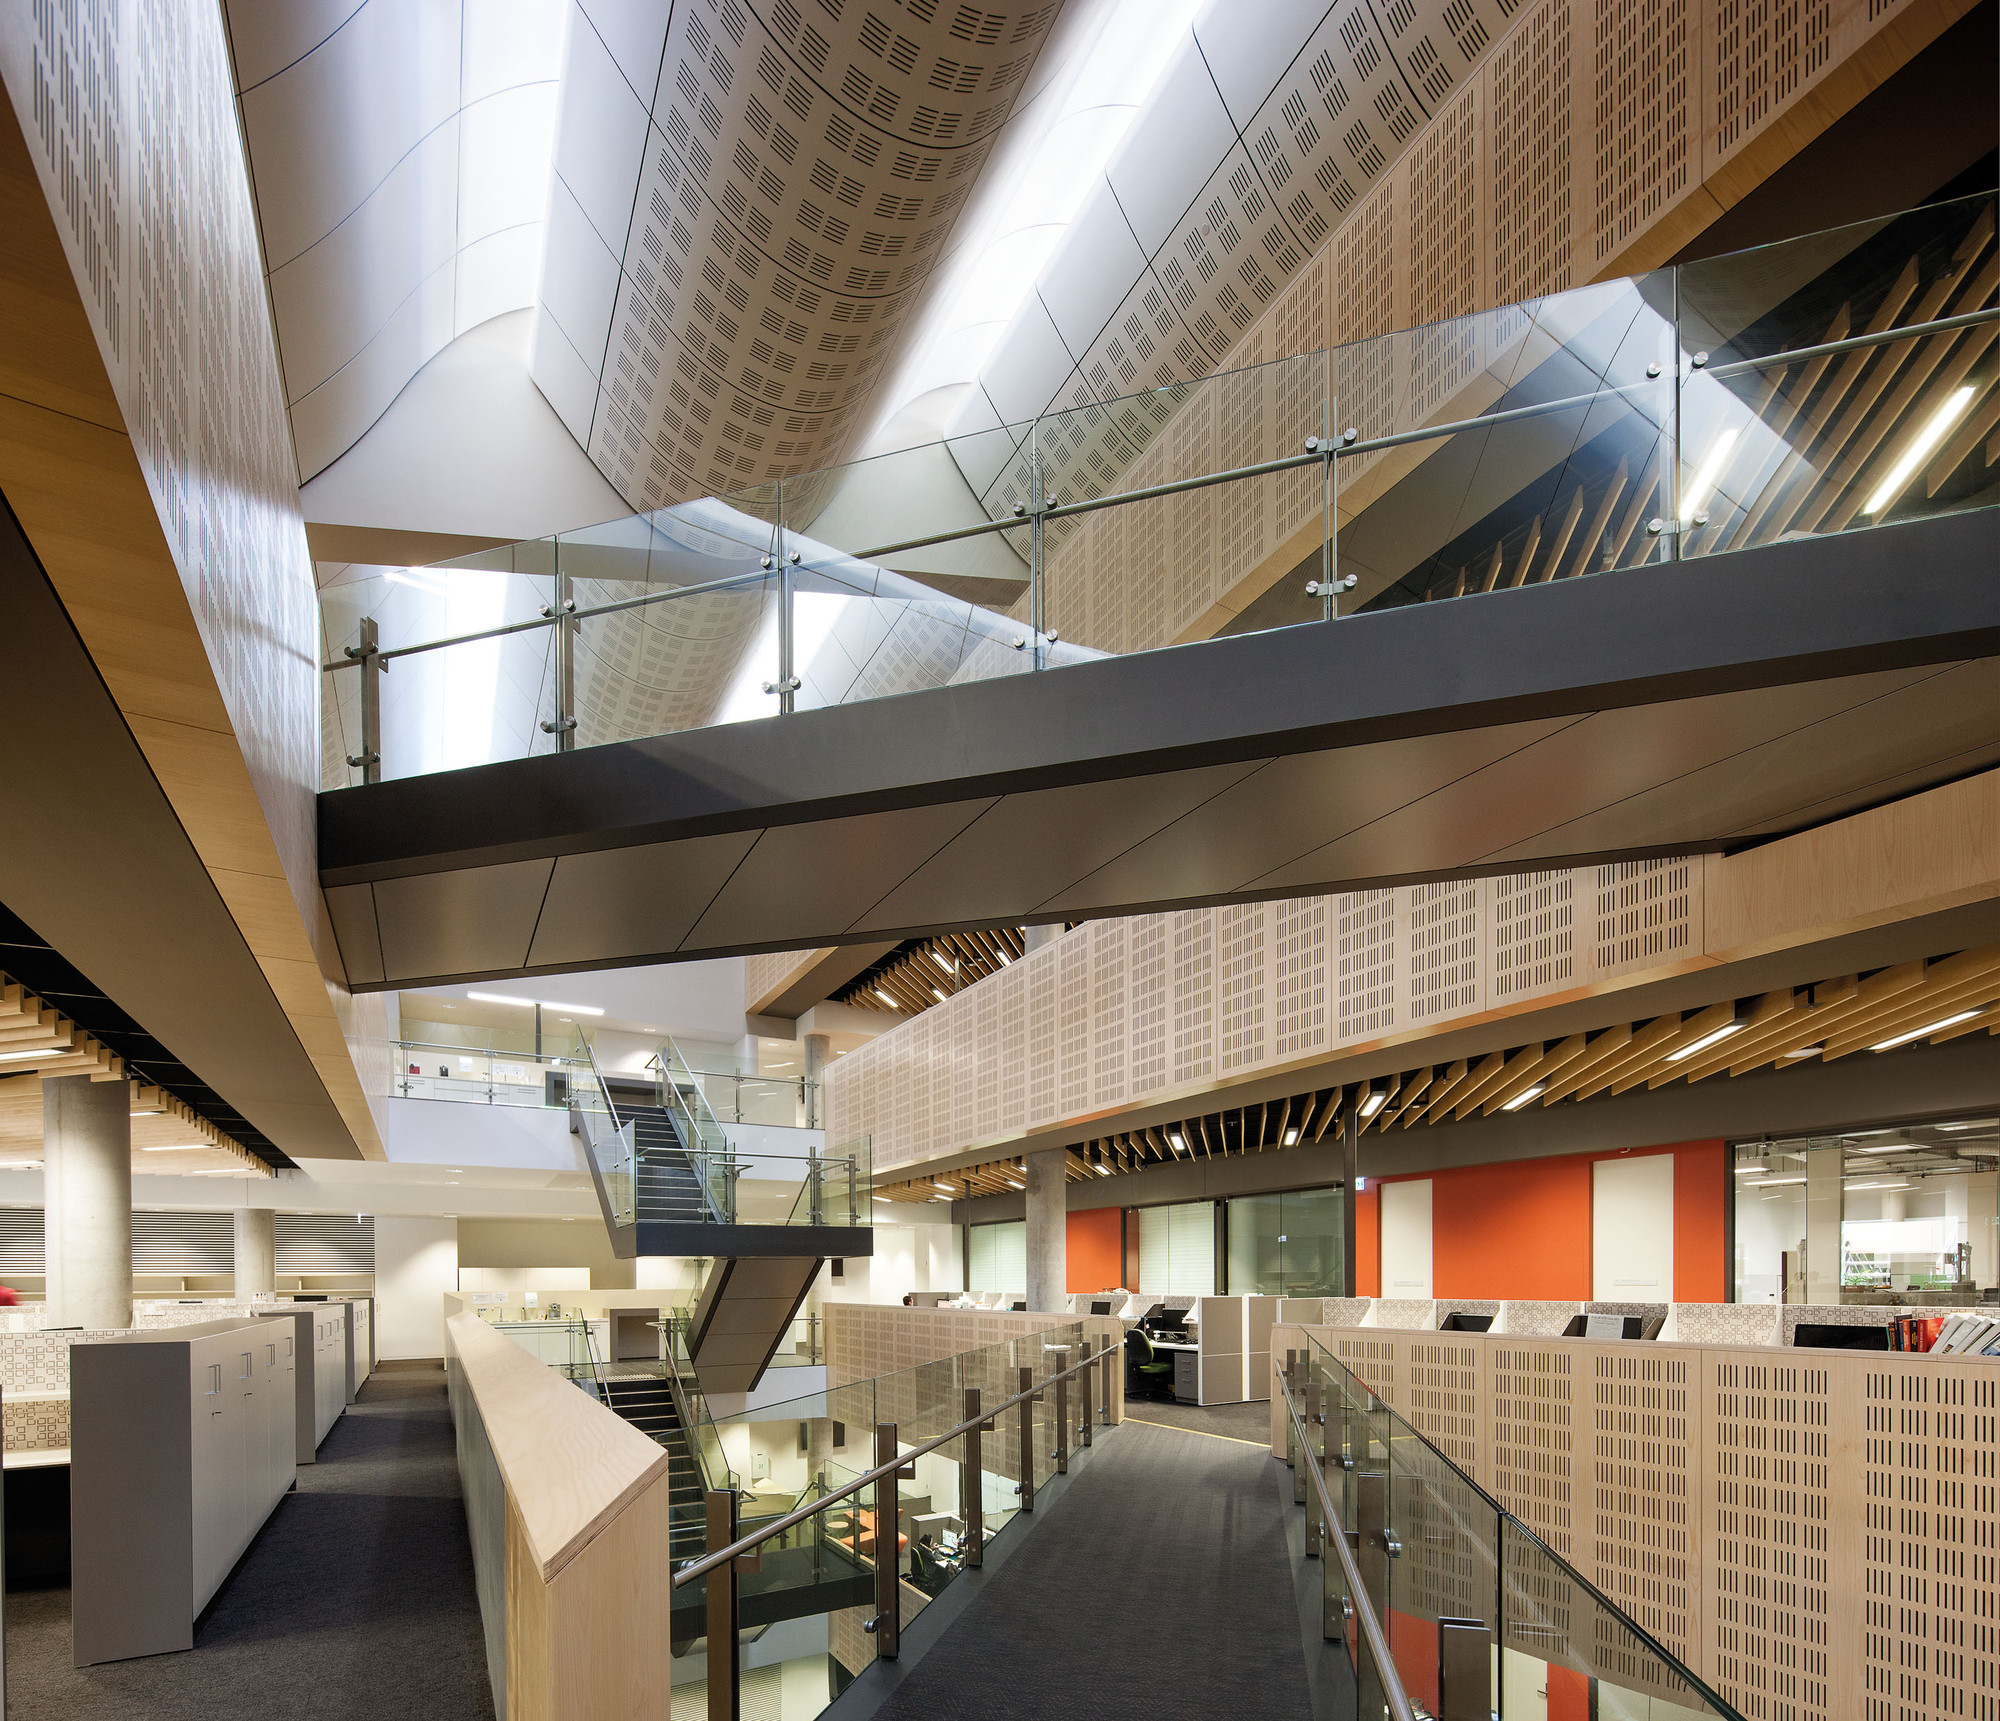 High Tech Modern Architecture Buildings: Gallery Of Tyree Energy Technologies Building / FJMT